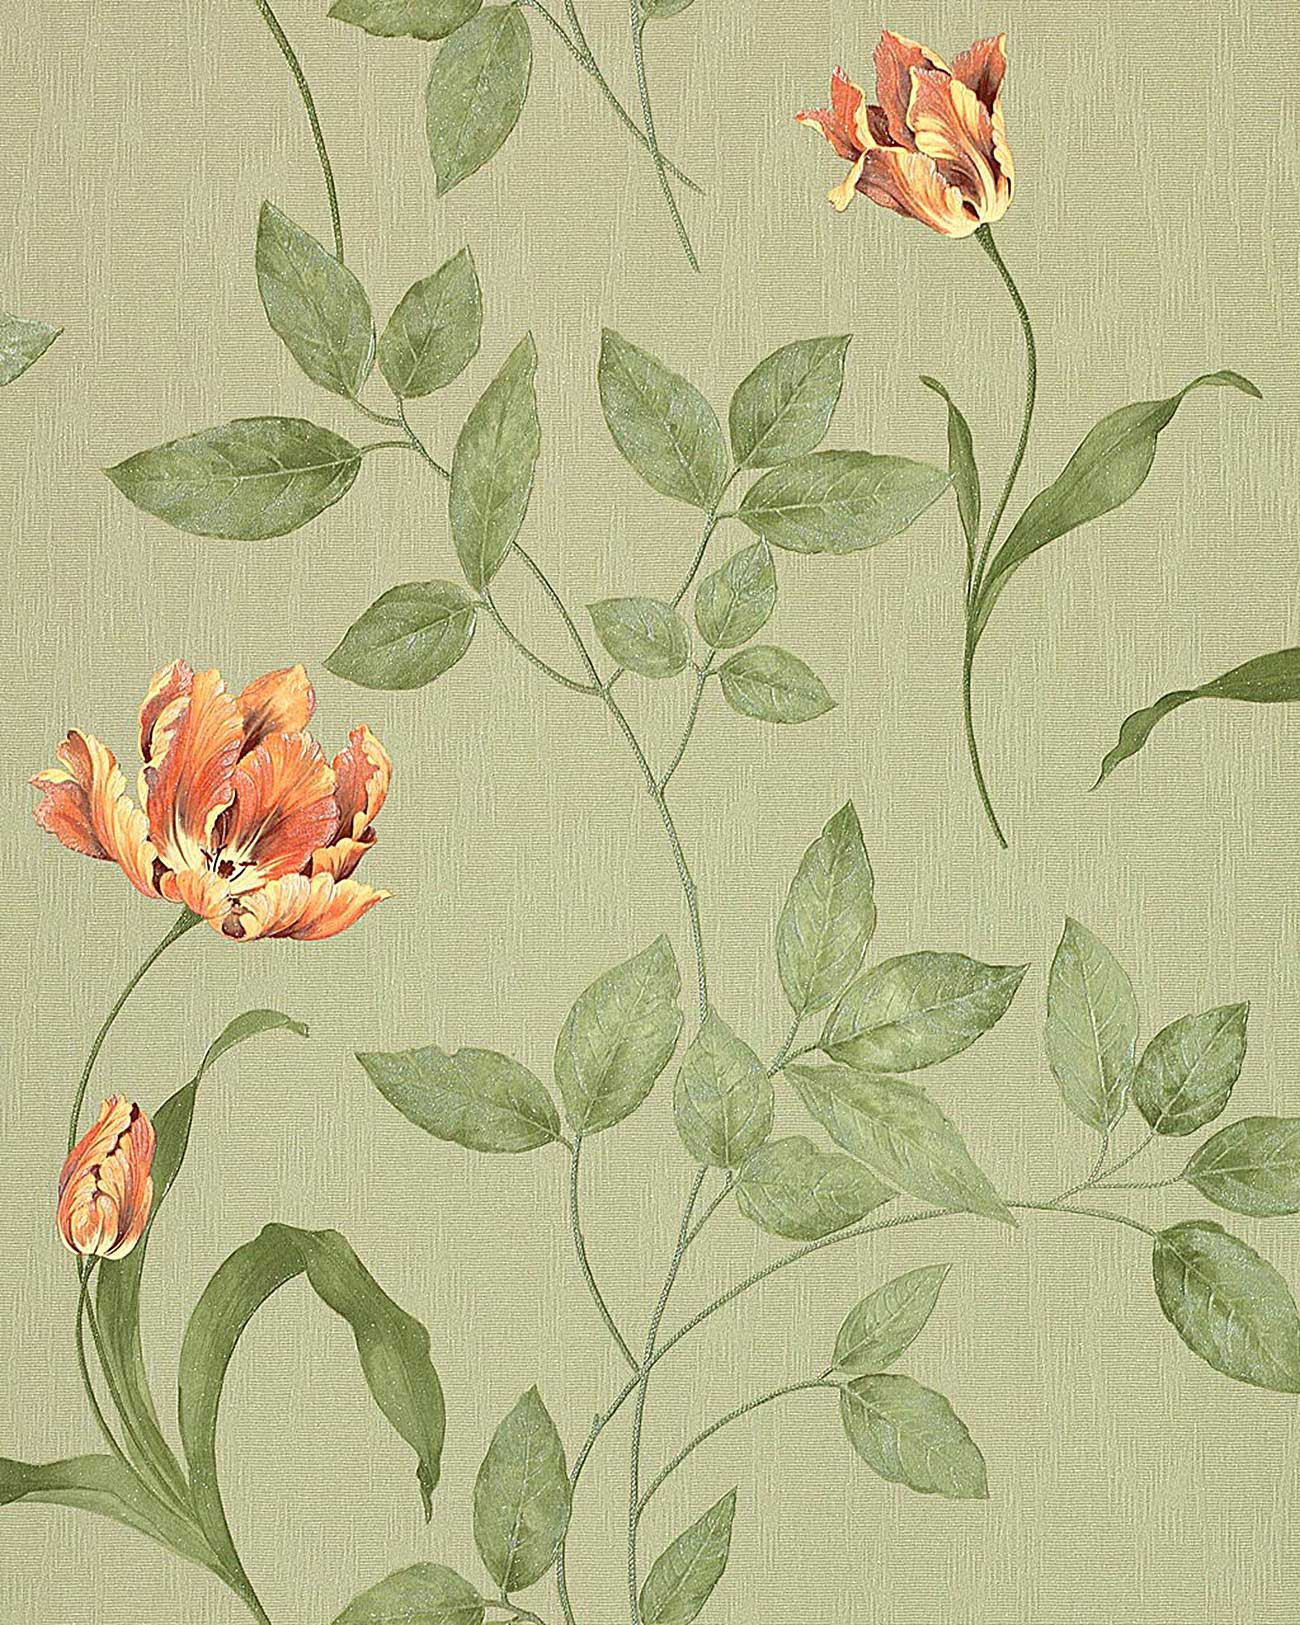 Textil Tapete Ueberstreichen : Yellow Floral Wall Covering